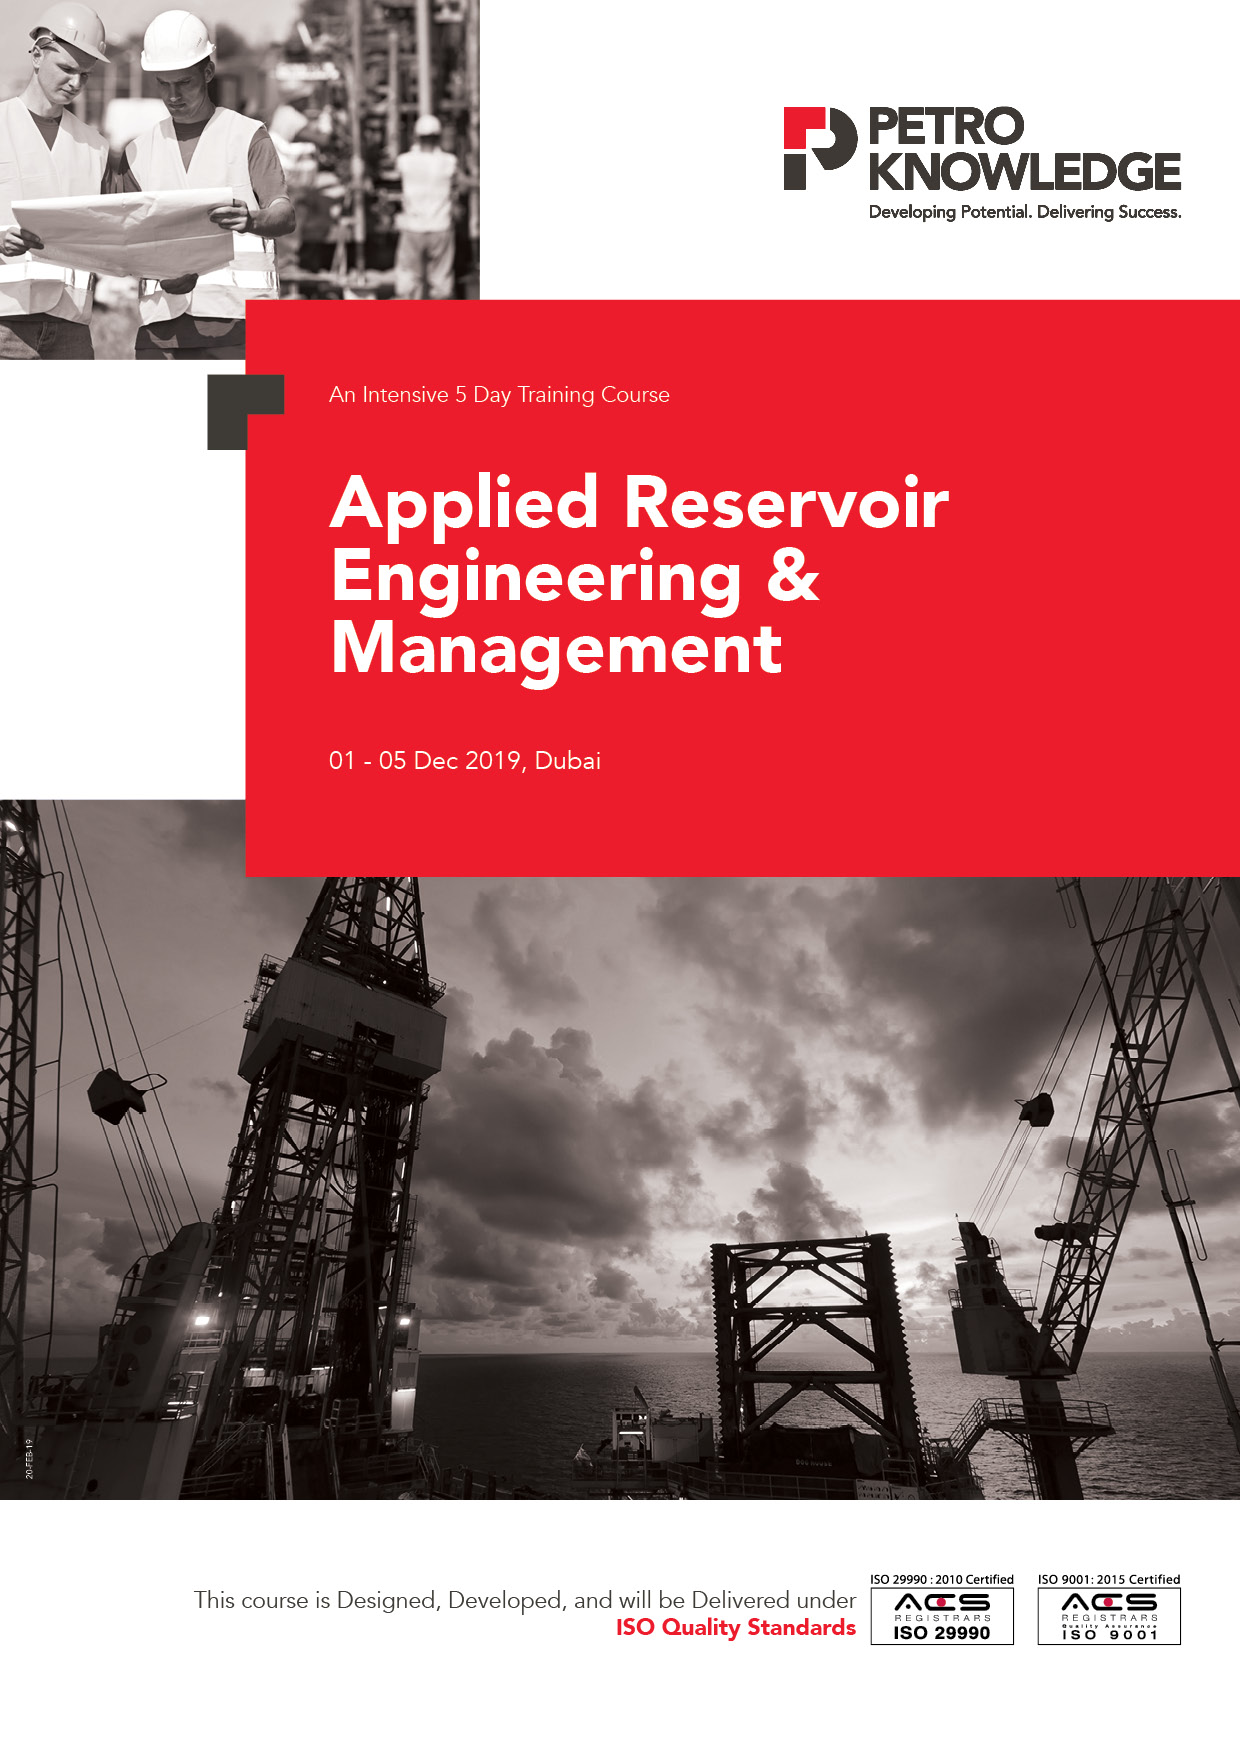 Applied Reservoir Engineering & Management